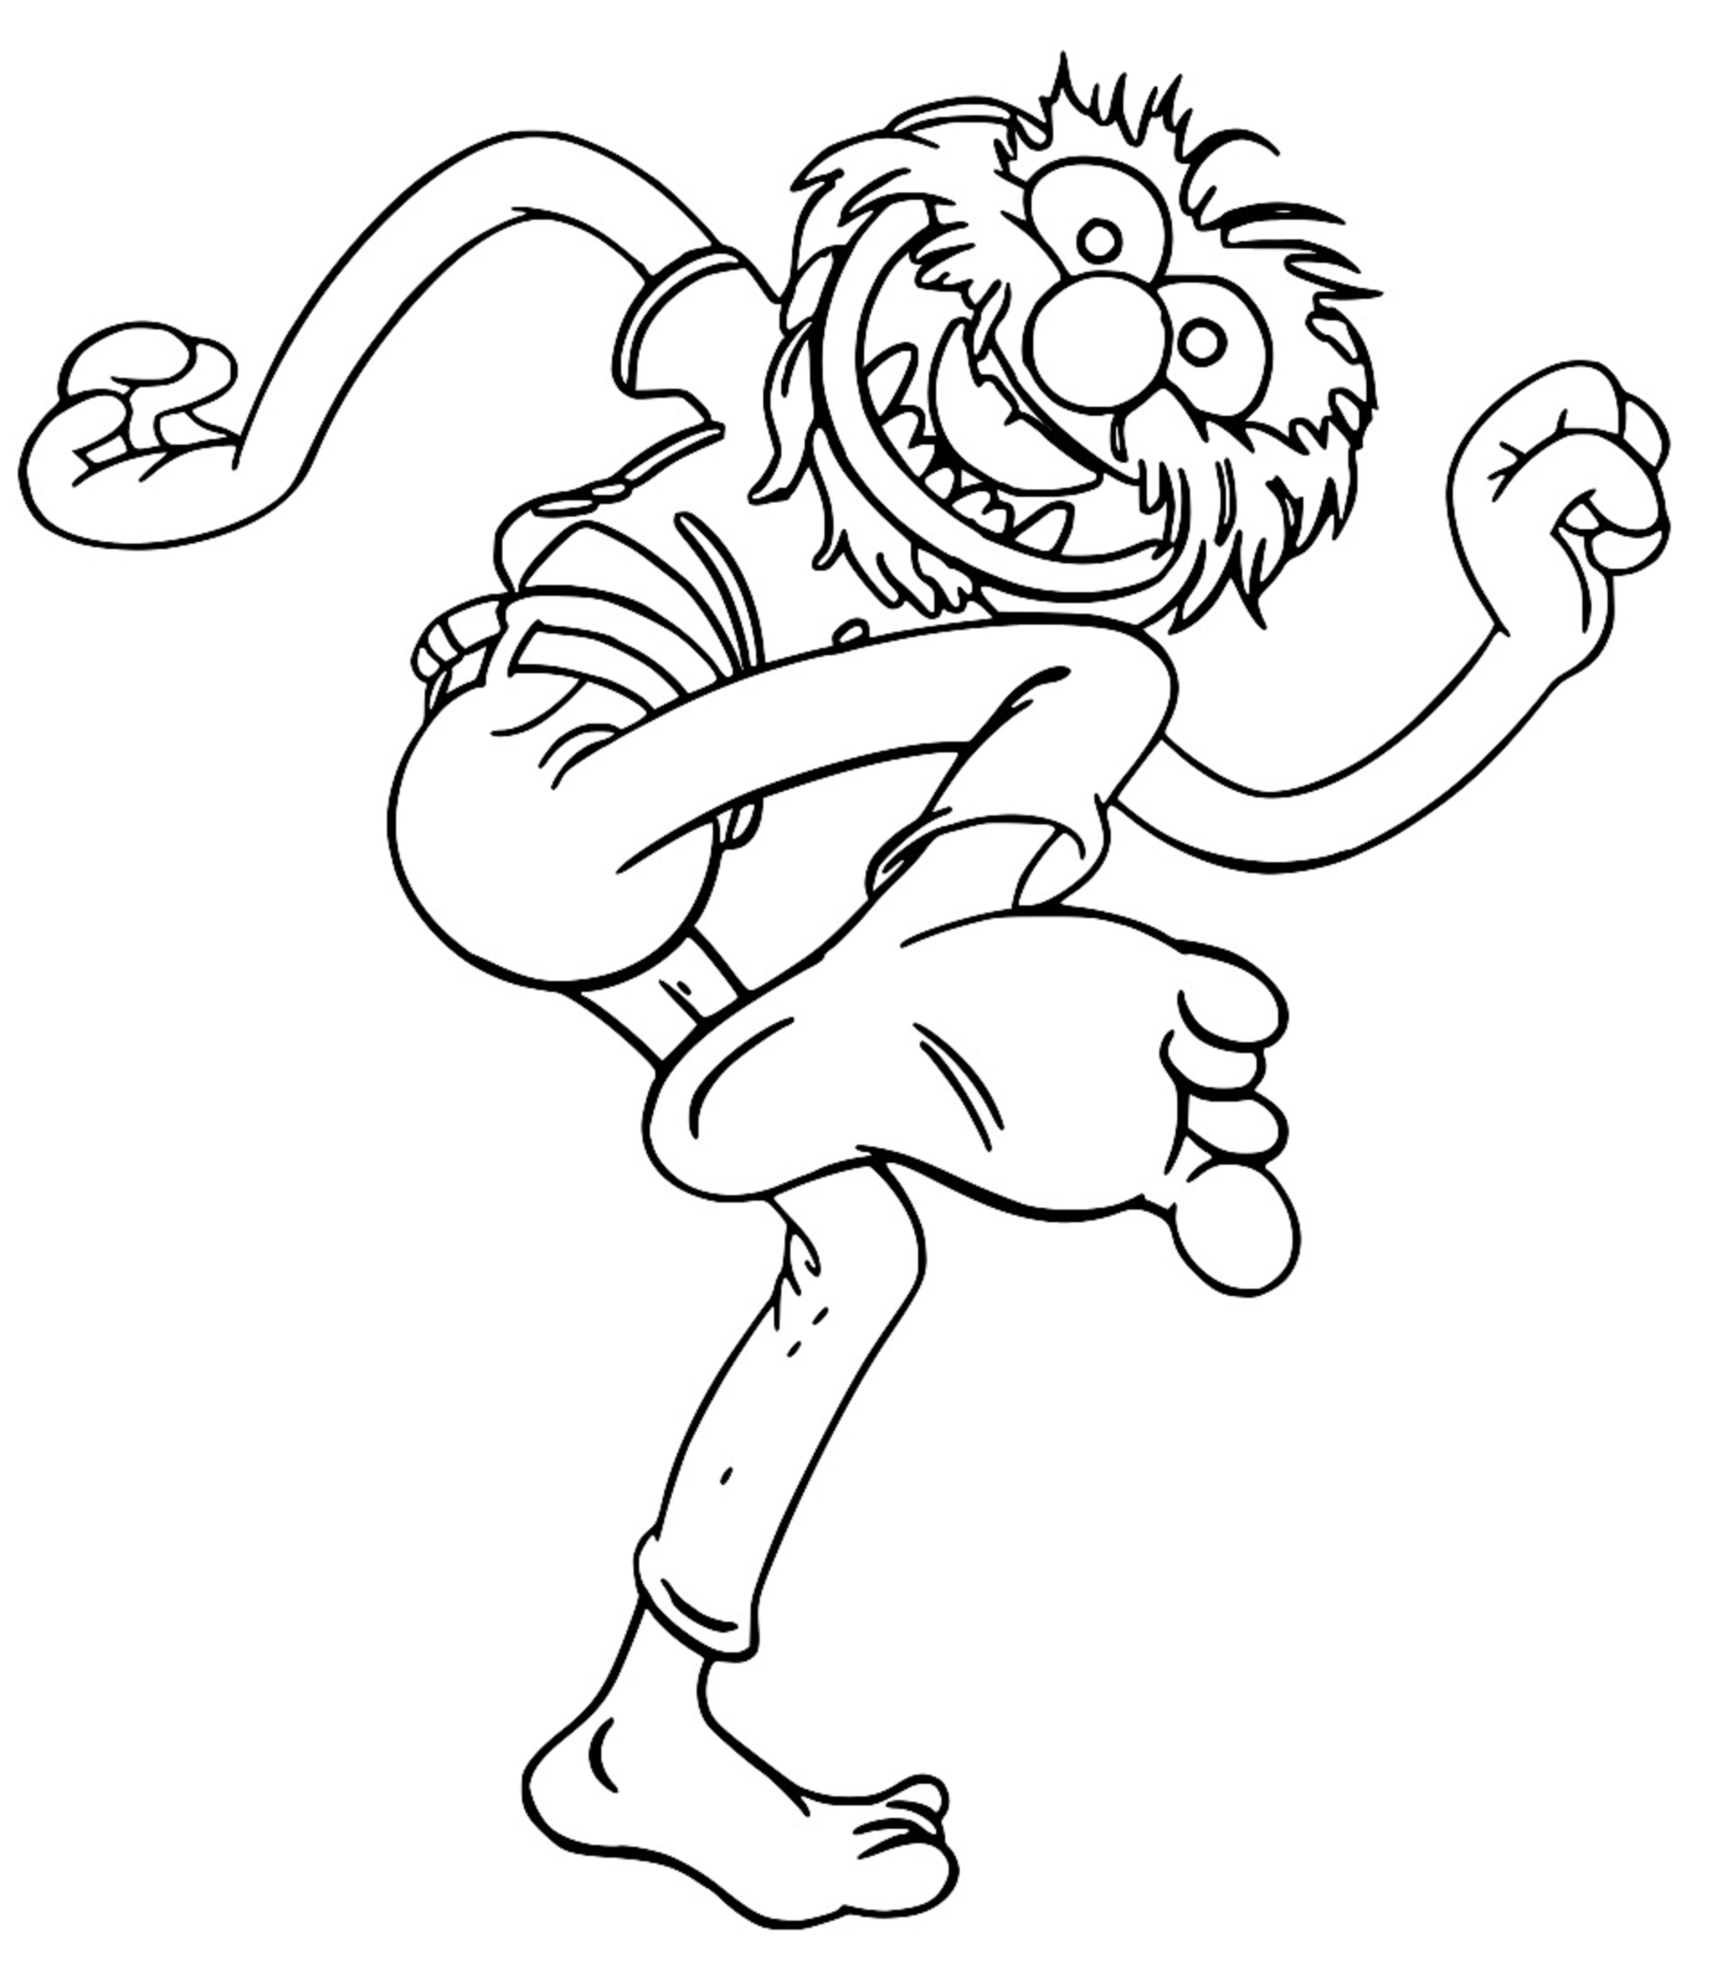 The Muppets muppets animal 3 Cartoon Coloring Page